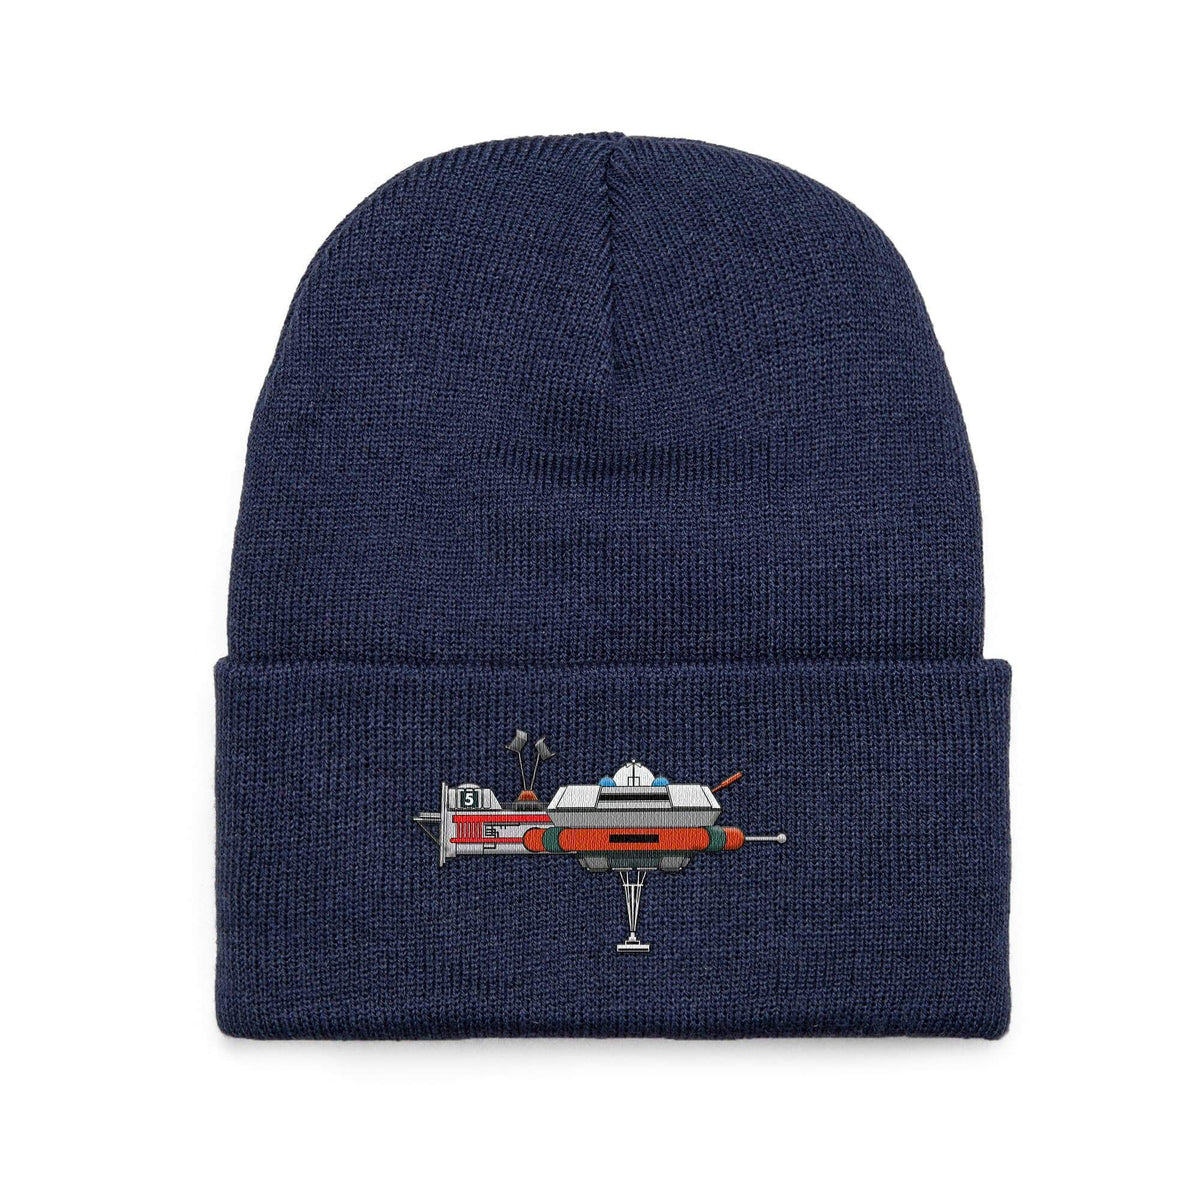 Thunderbird 5 Beanie (Wooly hat) [Official & Exclusive] - The Gerry Anderson Store